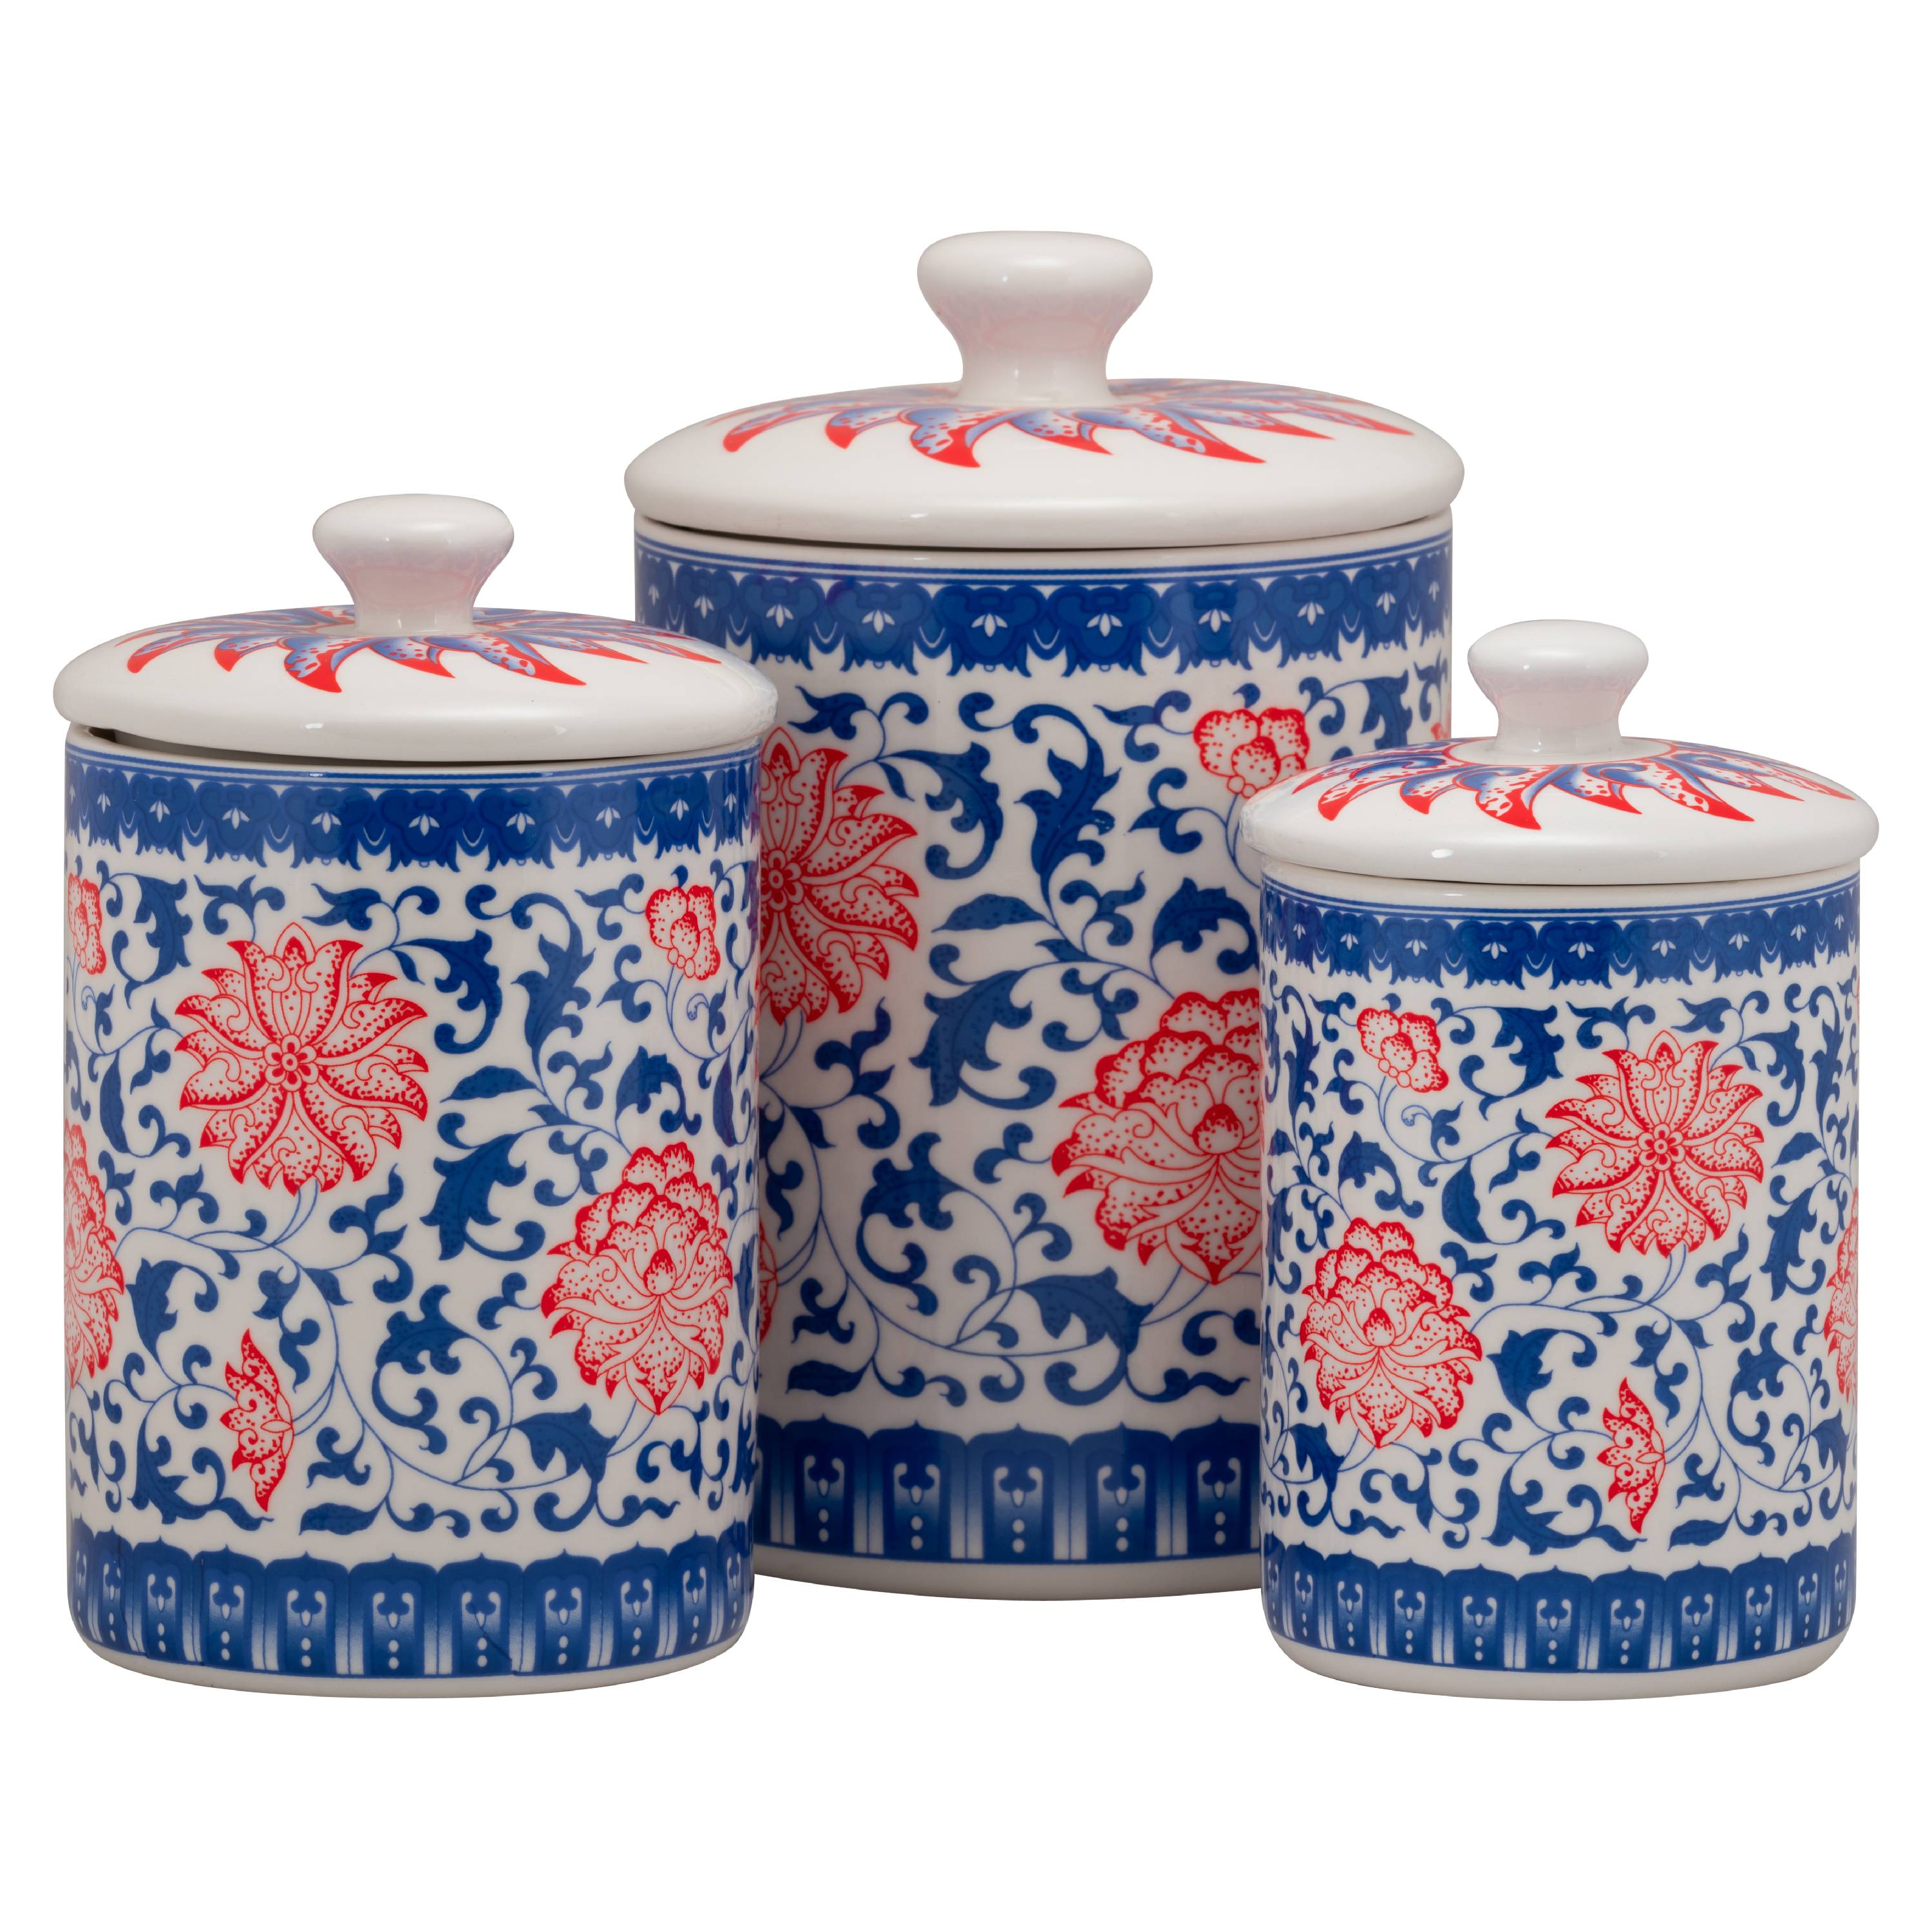 10 Strawberry Street Chinoiserie 3 Piece Porcelain Canister Set, Red/Blue